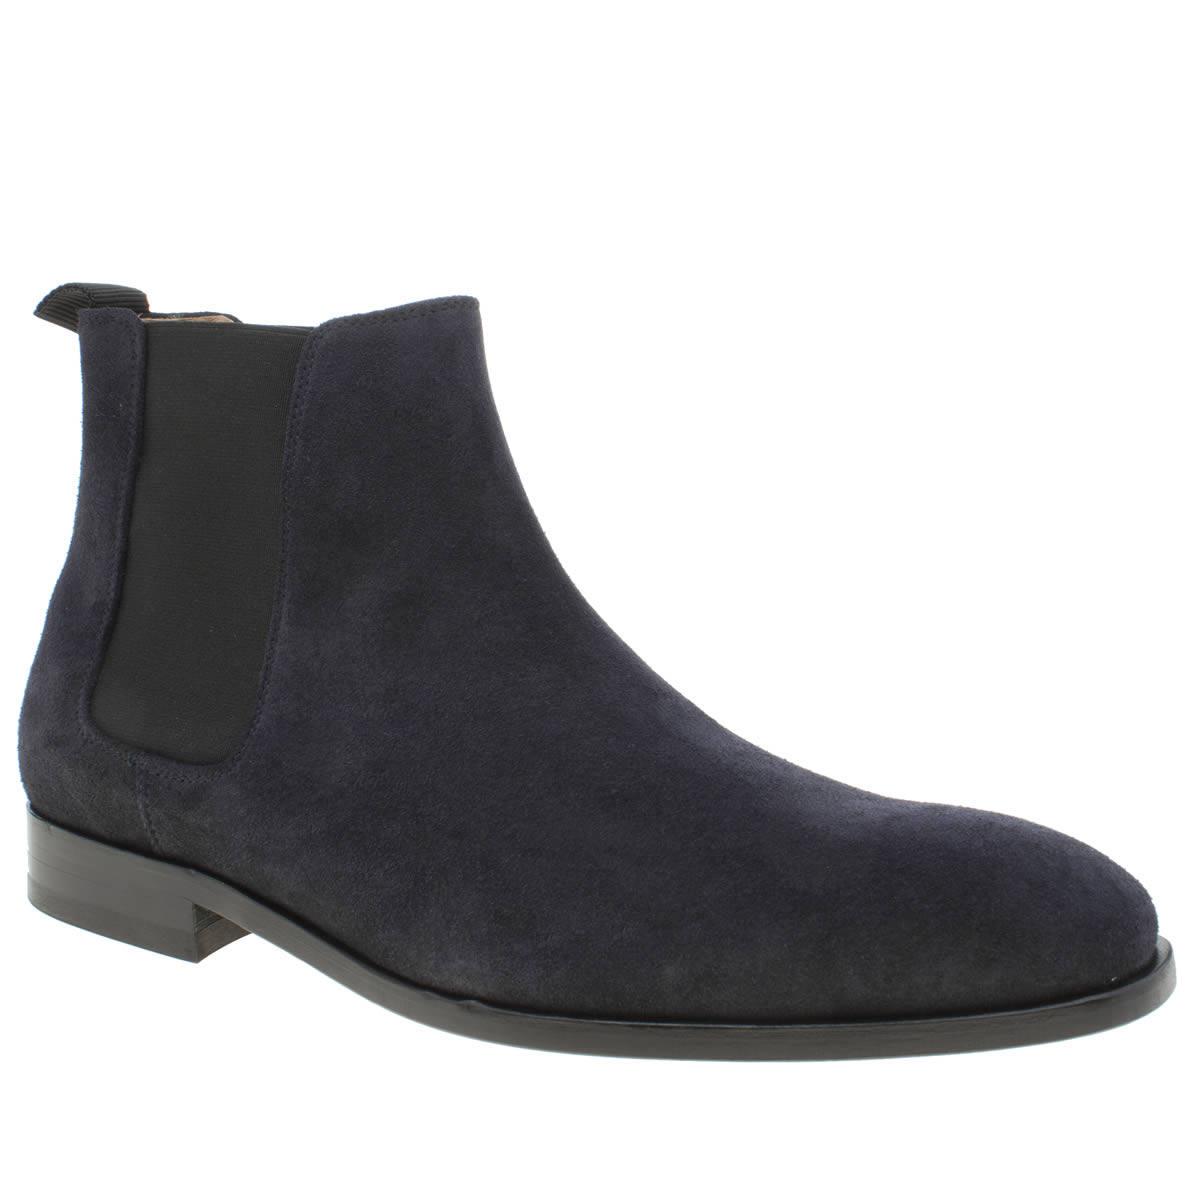 paul smith shoe ps Paul Smith Shoe Ps Navy Gerald Boots